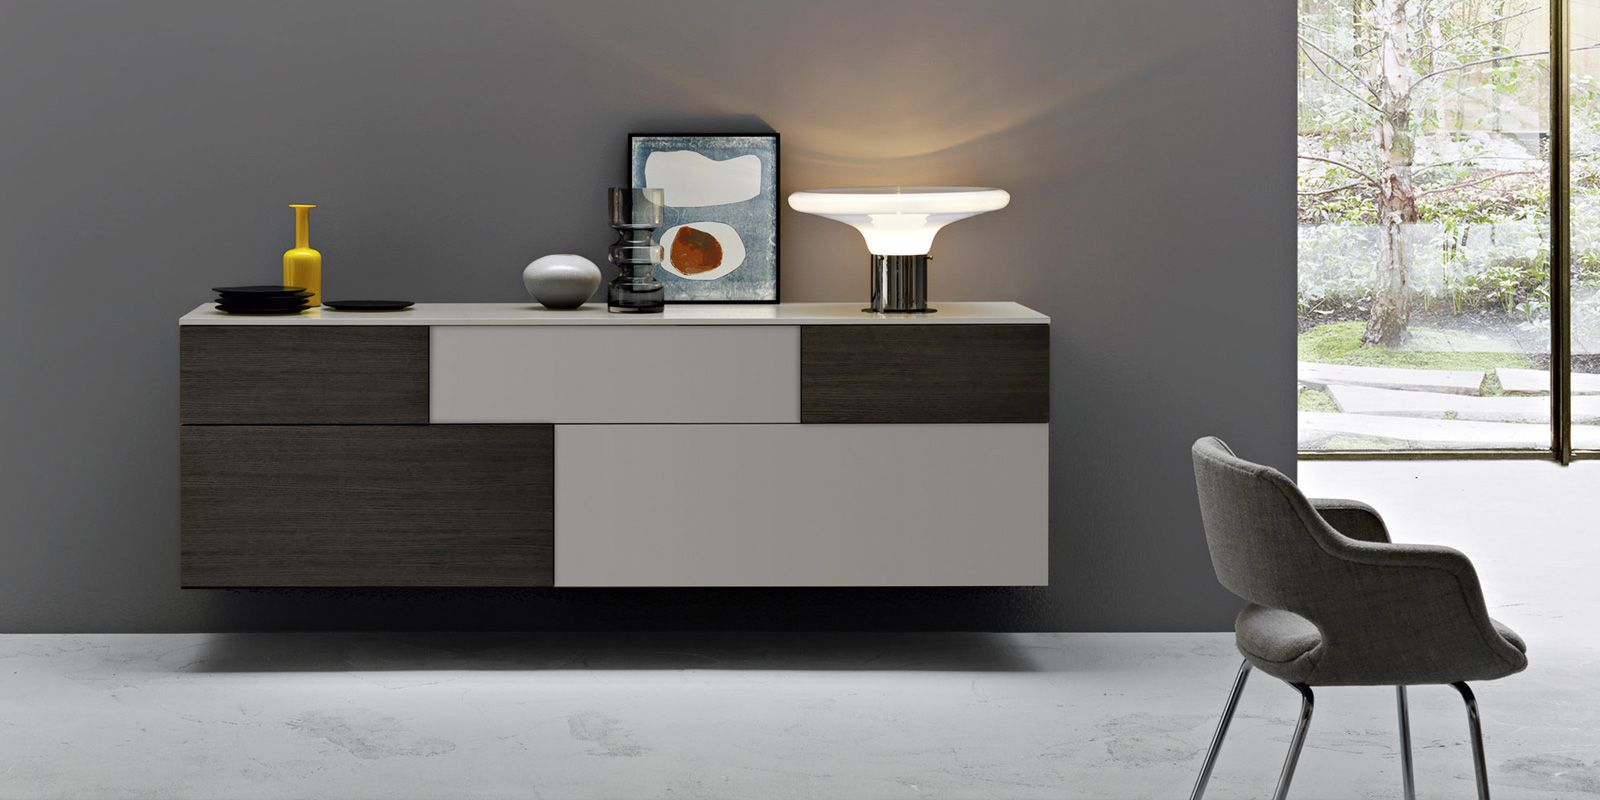 Incontro wall mounted sideboard by Sangiacomo | spaces of interest ...